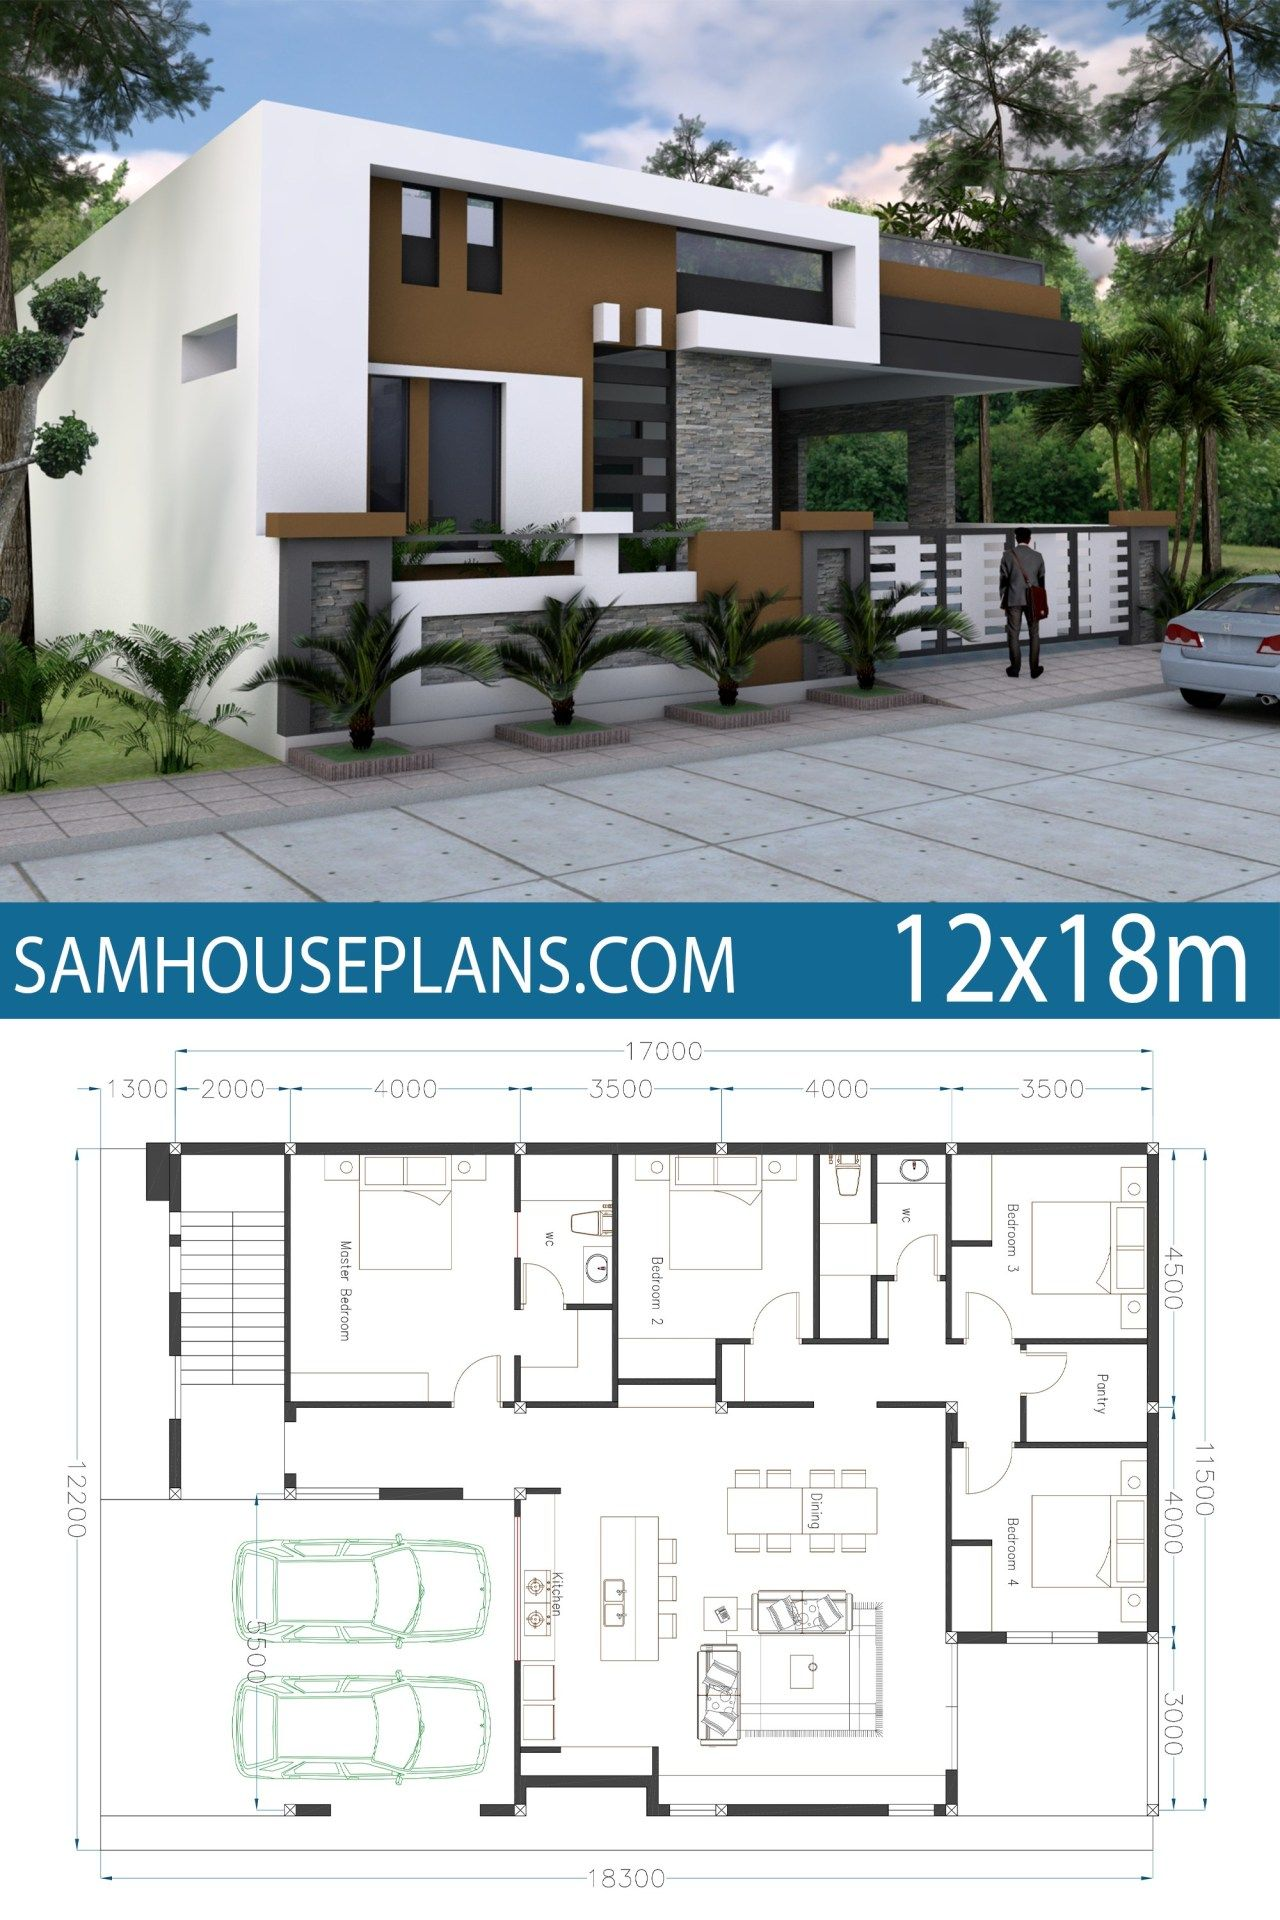 Home Design 40x60f With 4 Bedrooms Sam House Plans Single Floor House Design House Front Design House Plans